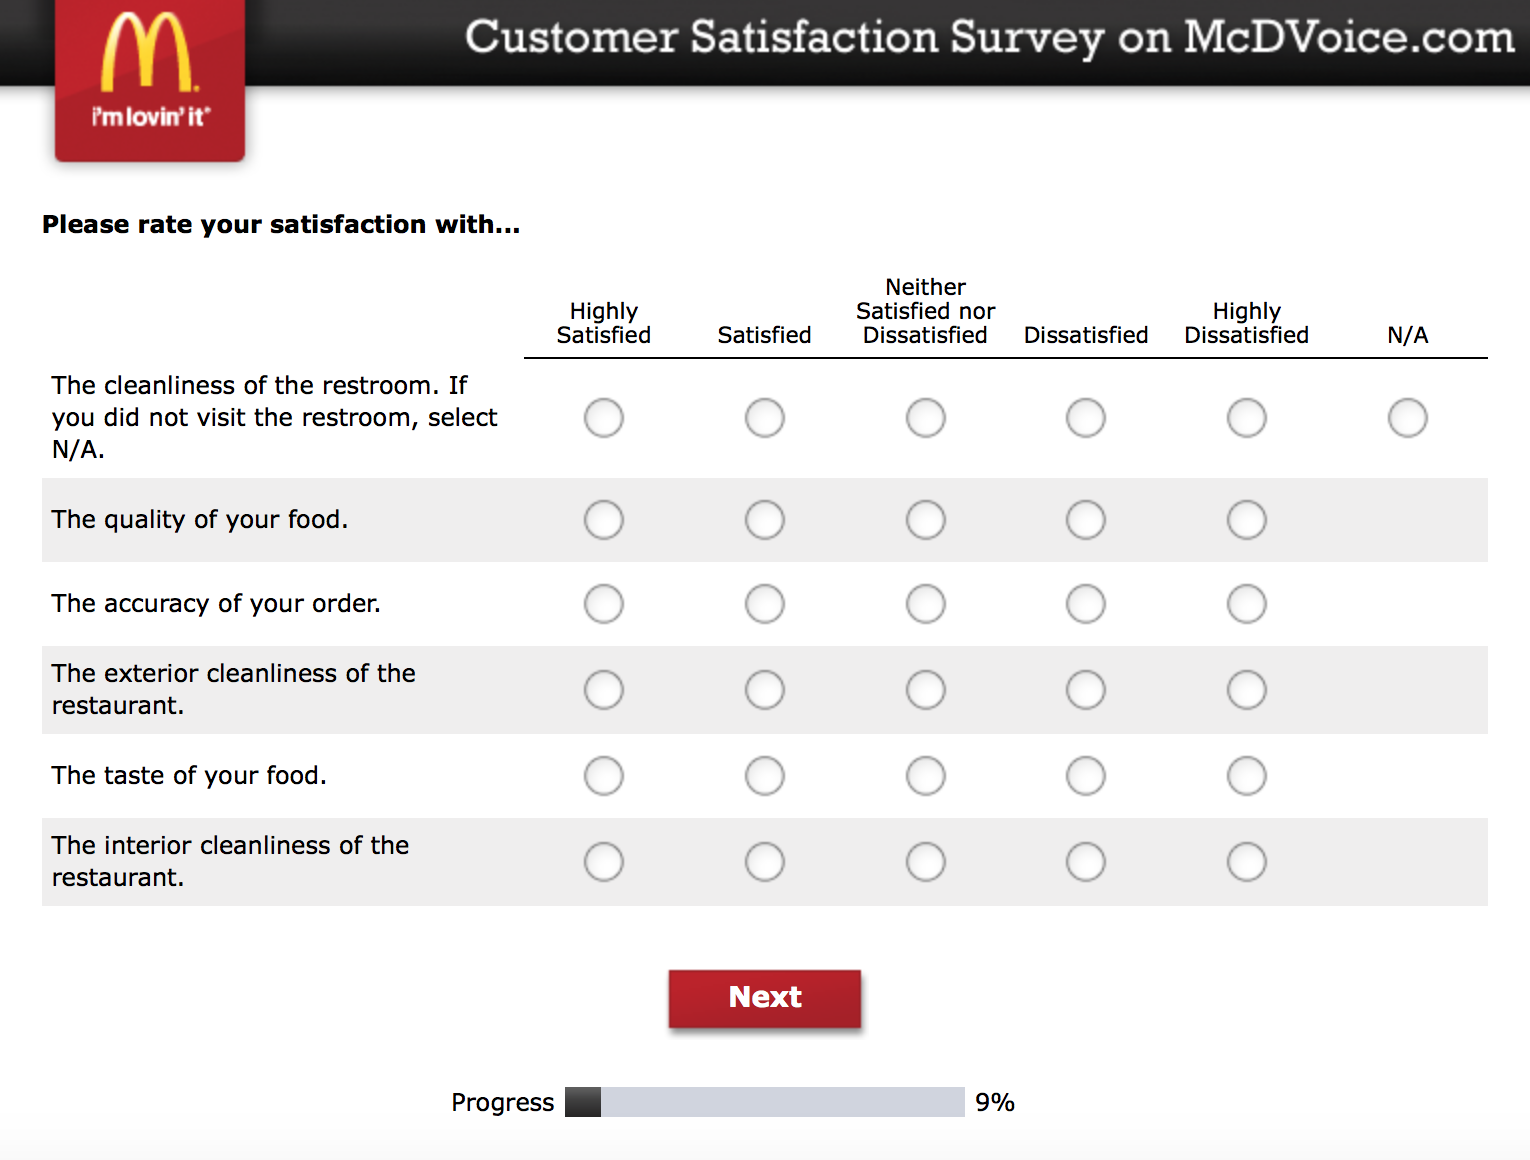 Mcdvoice.com Customer Survey 4